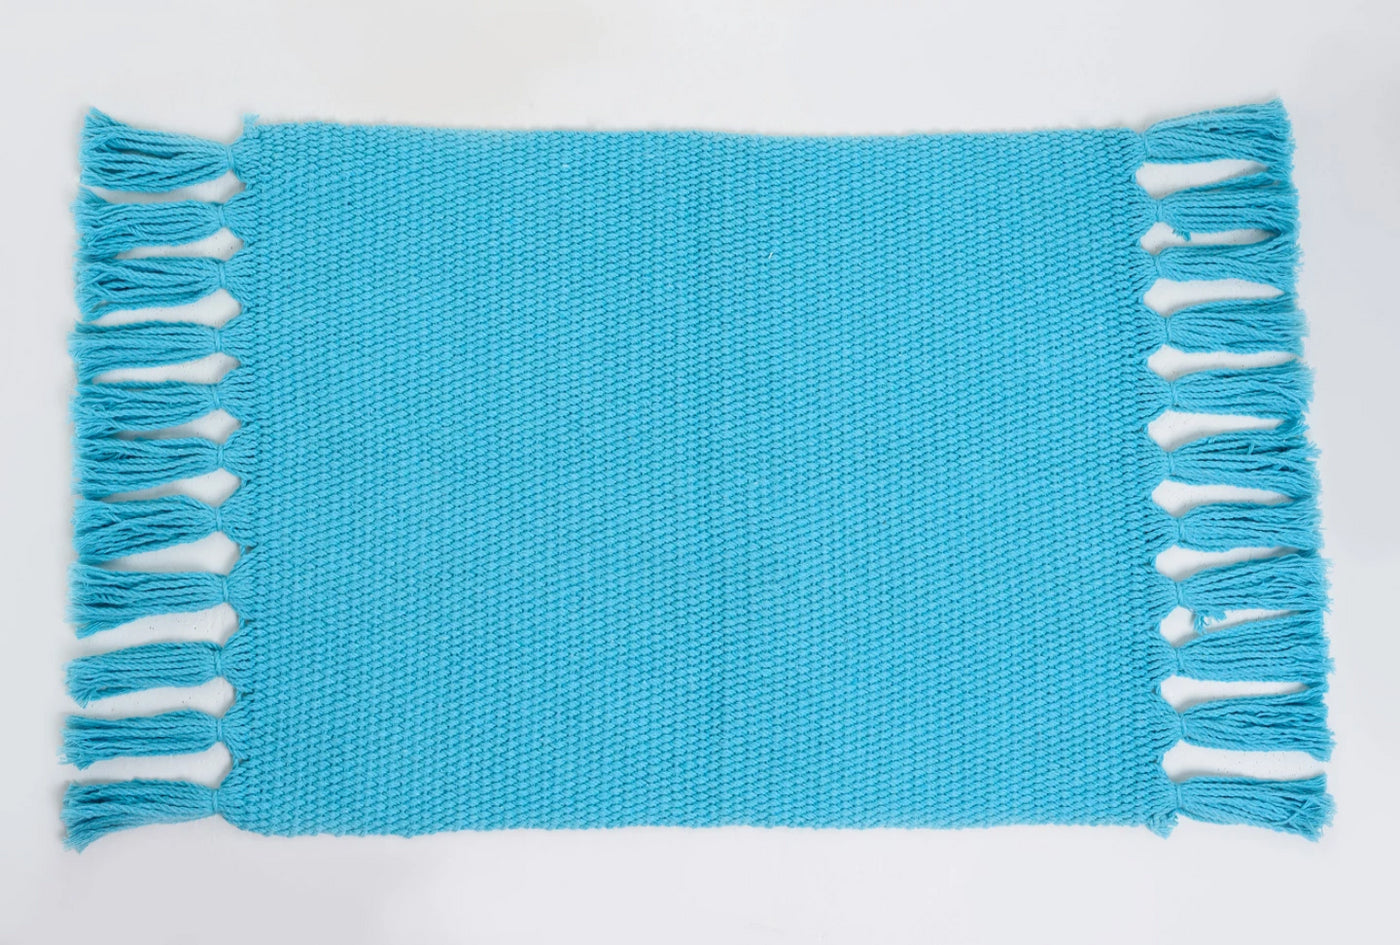 Sky Blue Handmade Cotton Placemats Set of 6 Formal Casual Decor